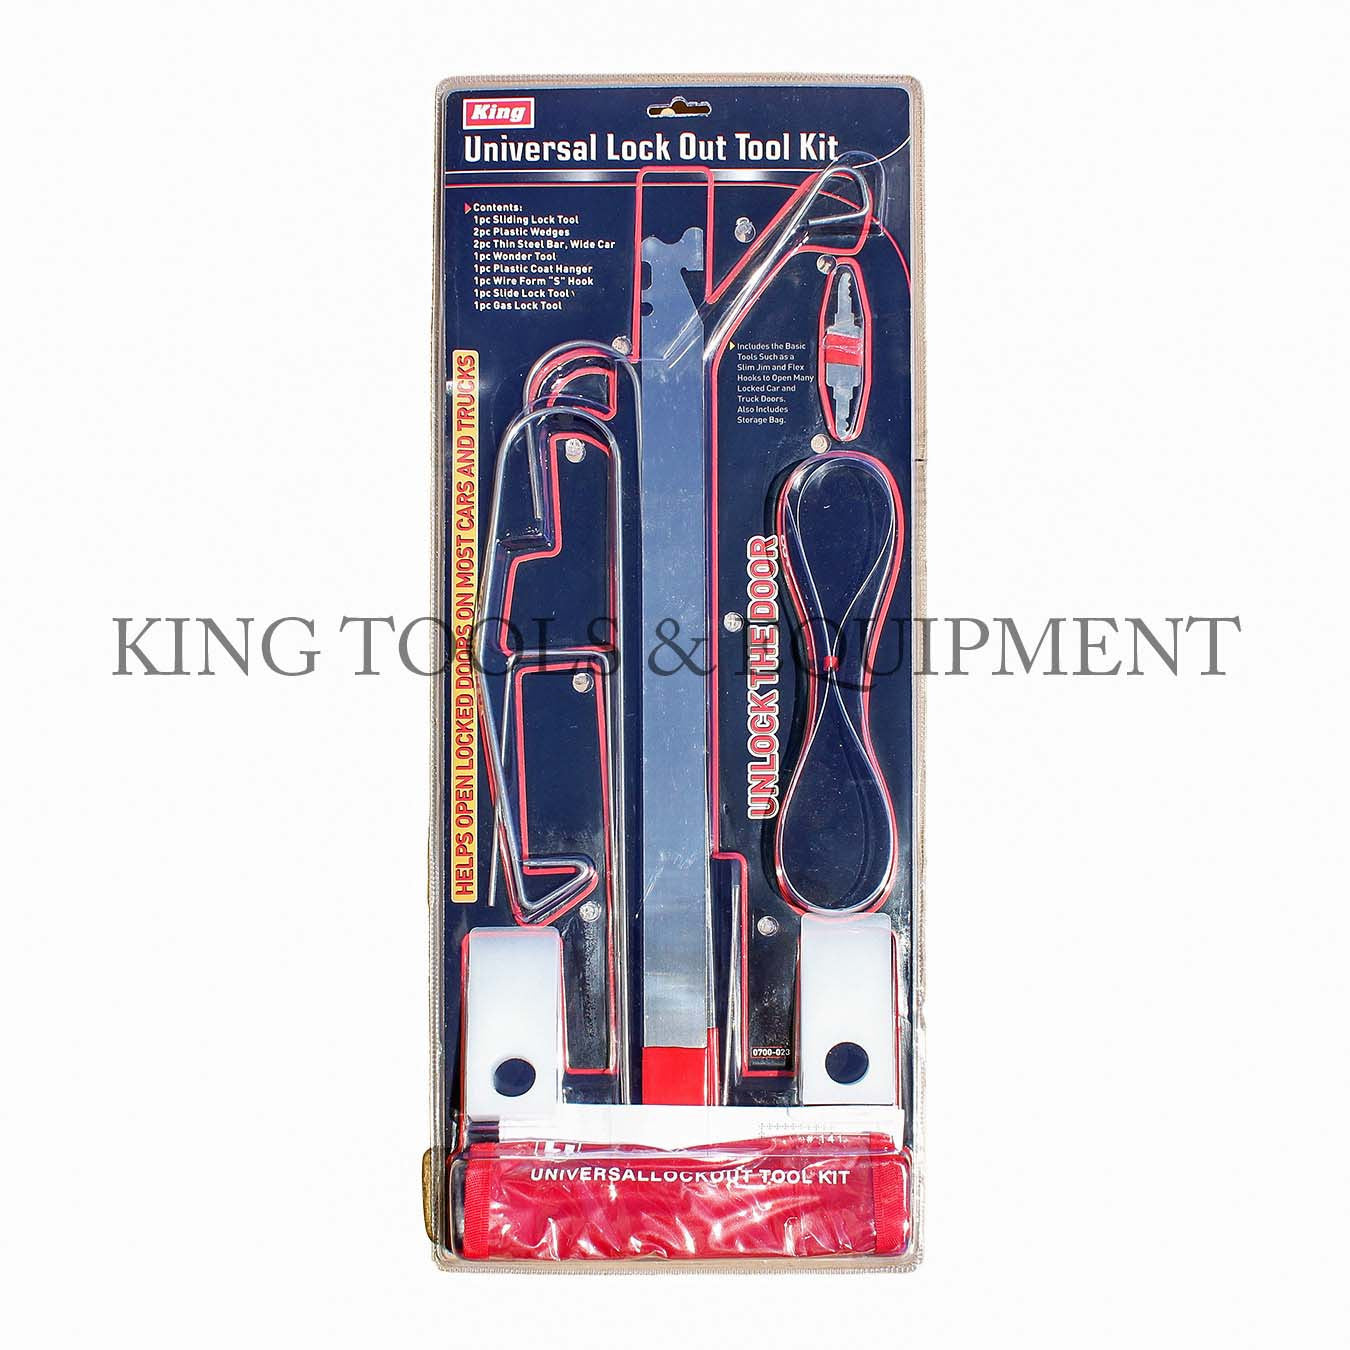 Lock Out Kit For Cars >> 9 Pc Universal Lock Out Tool Kit W Pouch 0700 0 King Tools